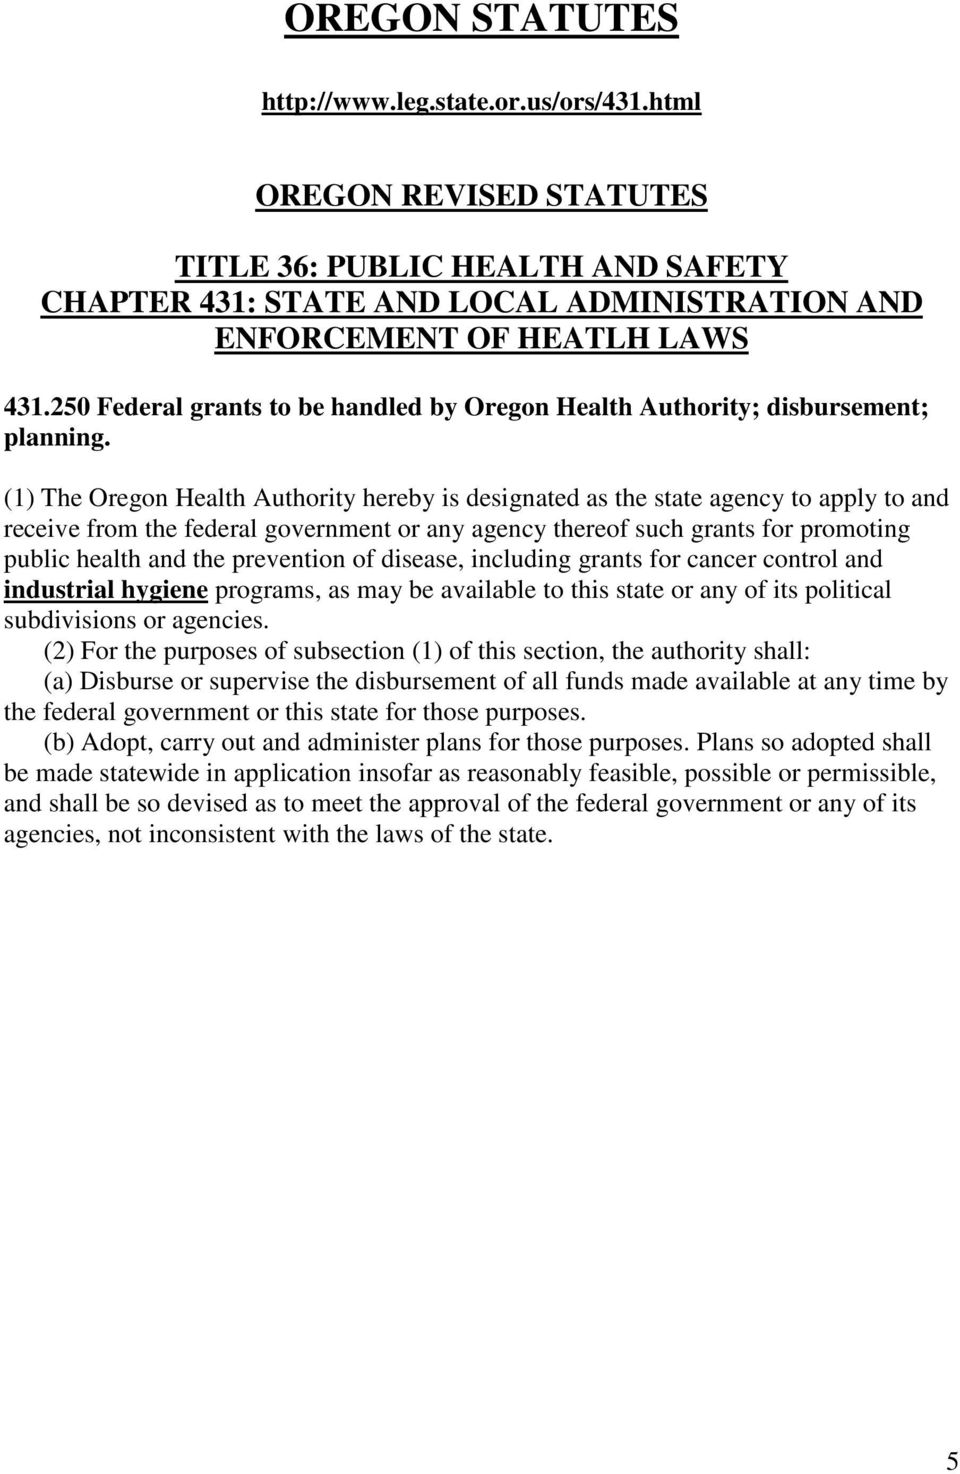 (1) The Oregon Health Authority hereby is designated as the state agency to apply to and receive from the federal government or any agency thereof such grants for promoting public health and the